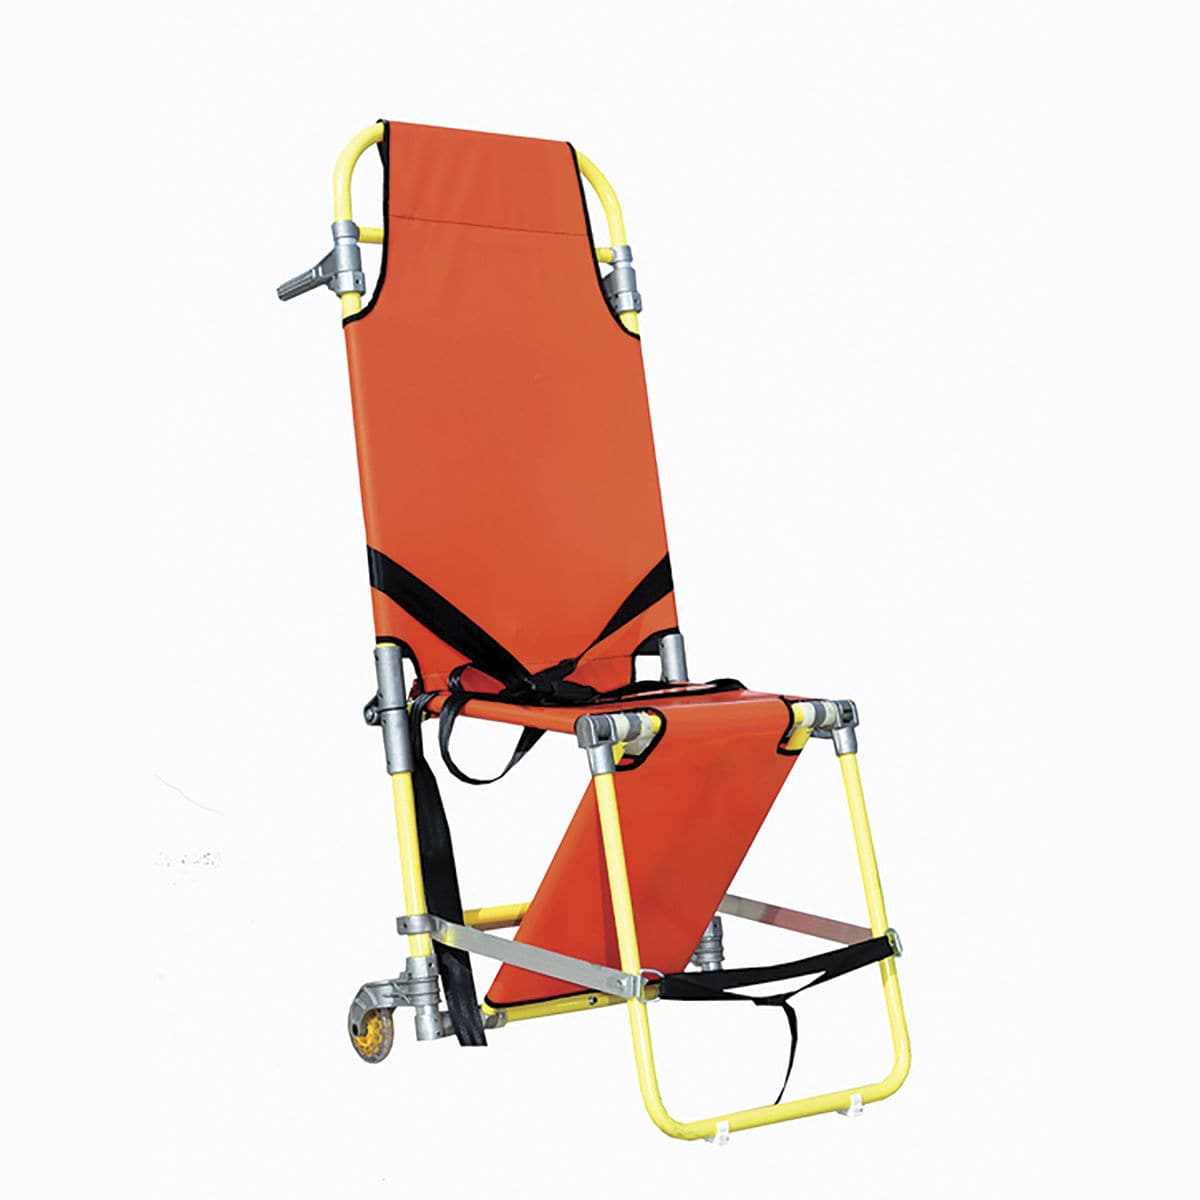 Stretcher Chair Manual Stretcher Chair Foldable X Ray Transparent 3 Section